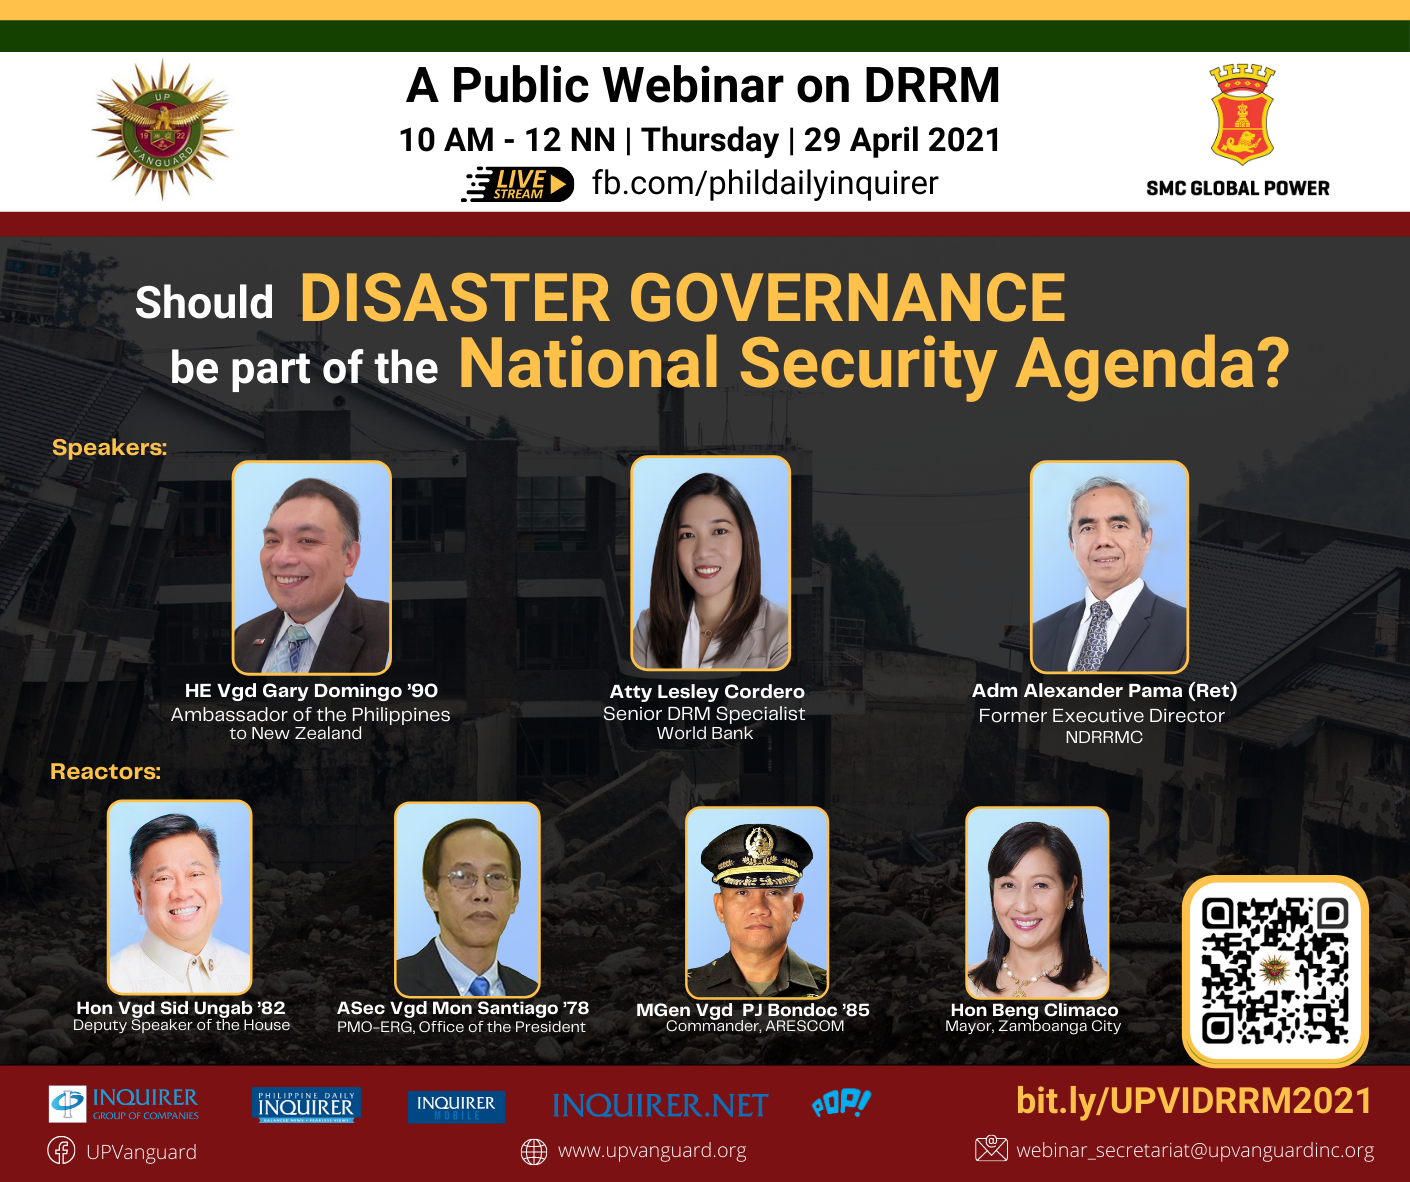 Should DISASTER GOVERNANCE be part of the National Security agenda?